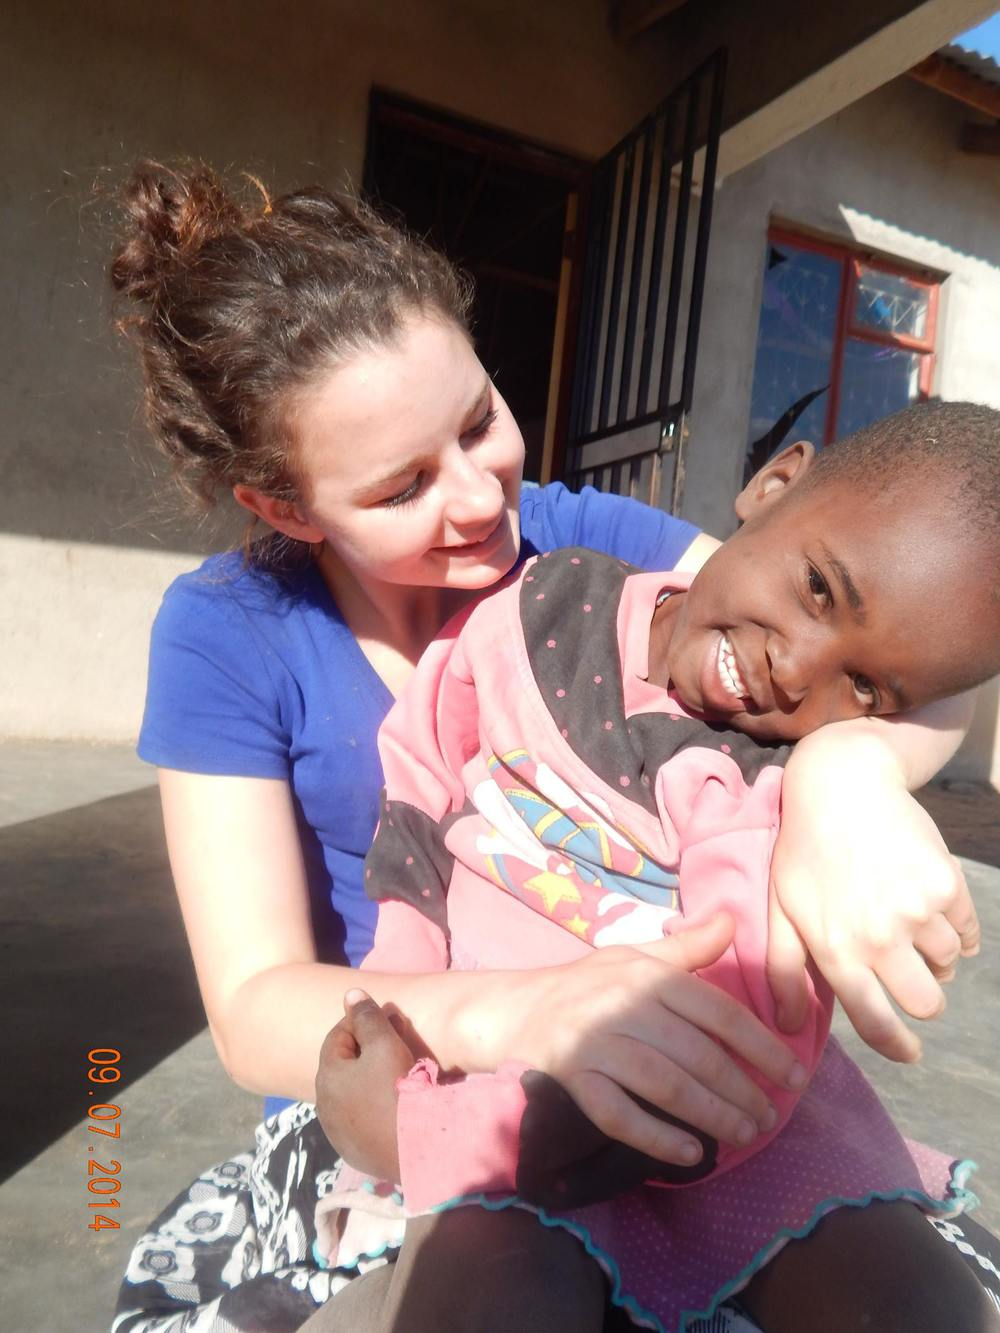 Brooke in South Africa. Brooke supported the Regional Support Team for Mozambique, South Africa, Swaziland and Zimbabwe.